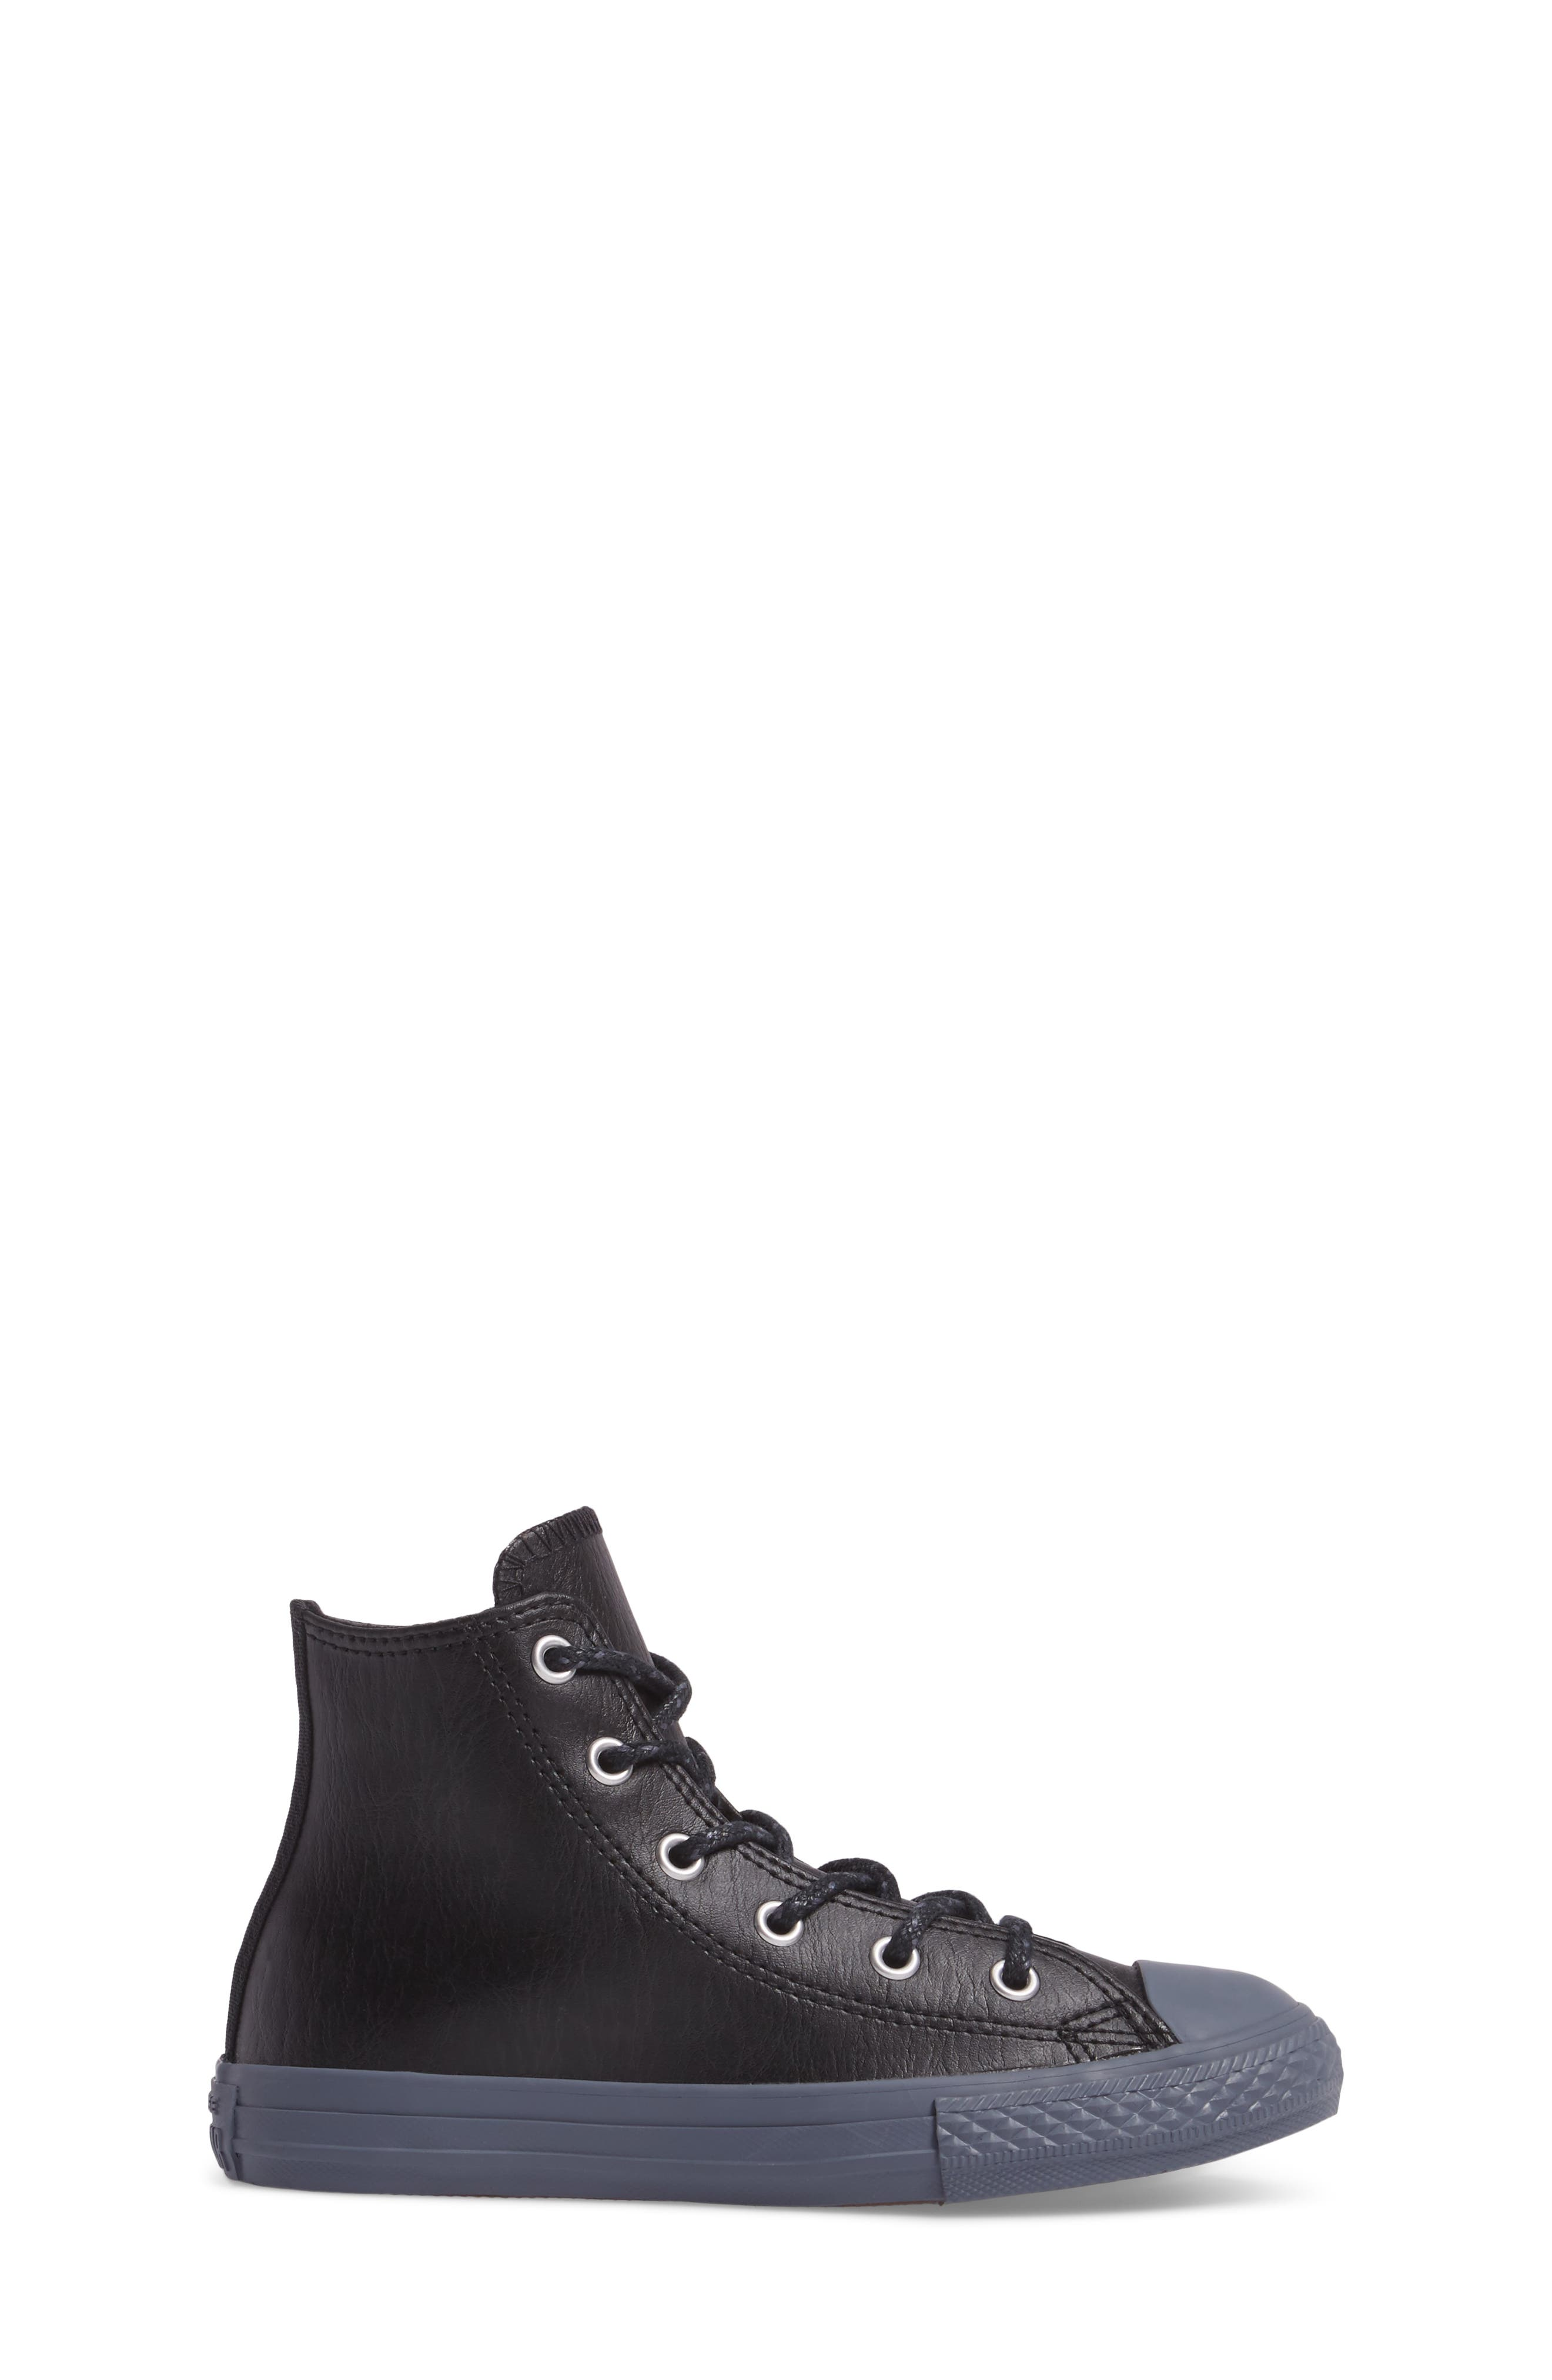 Chuck Taylor<sup>®</sup> All Star<sup>®</sup> Leather High Top Sneaker,                             Alternate thumbnail 3, color,                             001